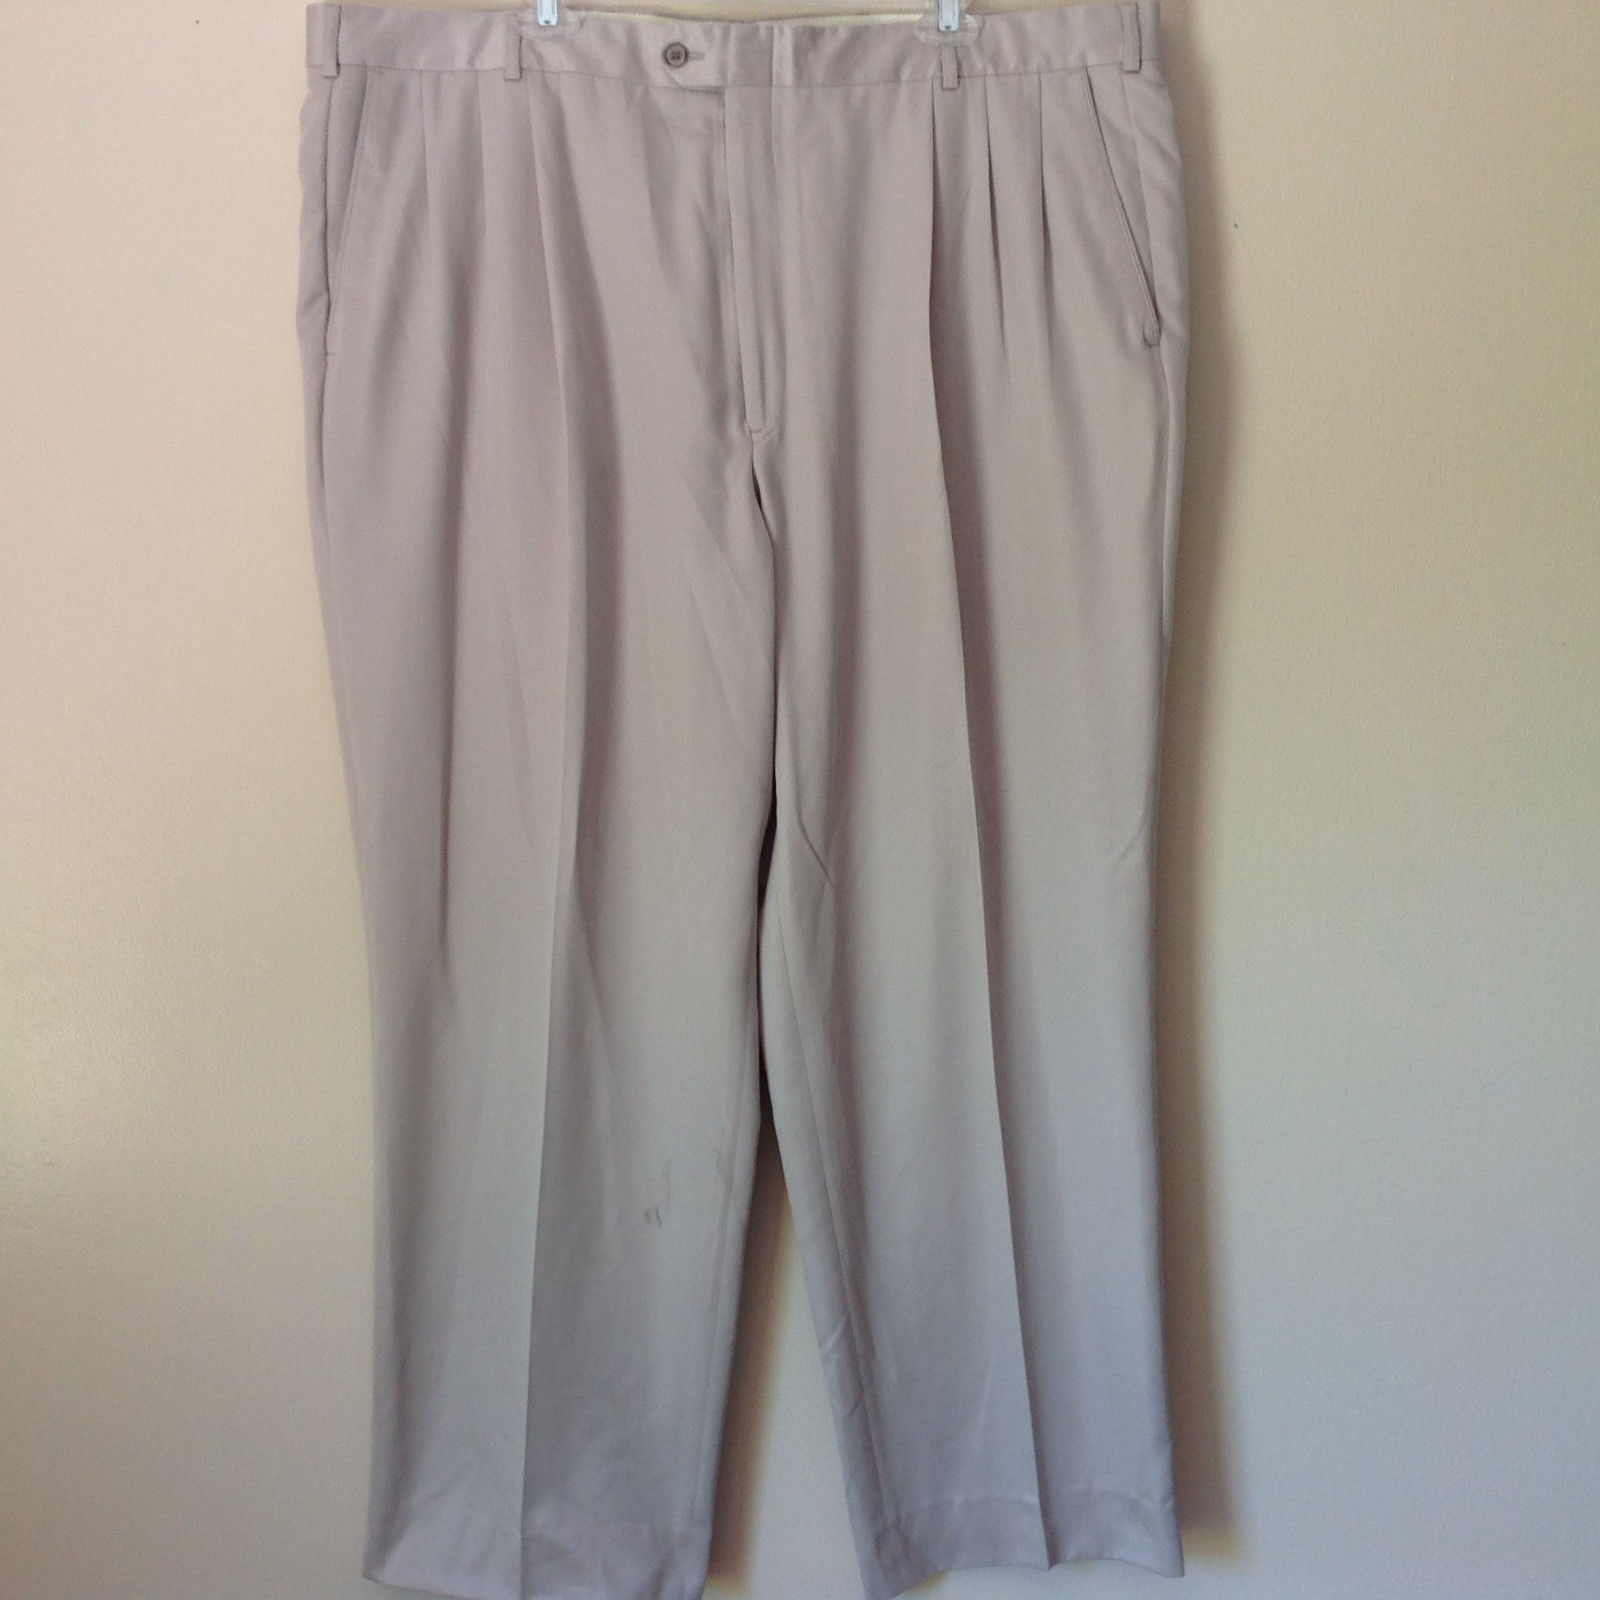 Cobra Golf Como Sport Size 44 Off White Silver Pleated Dress Pants